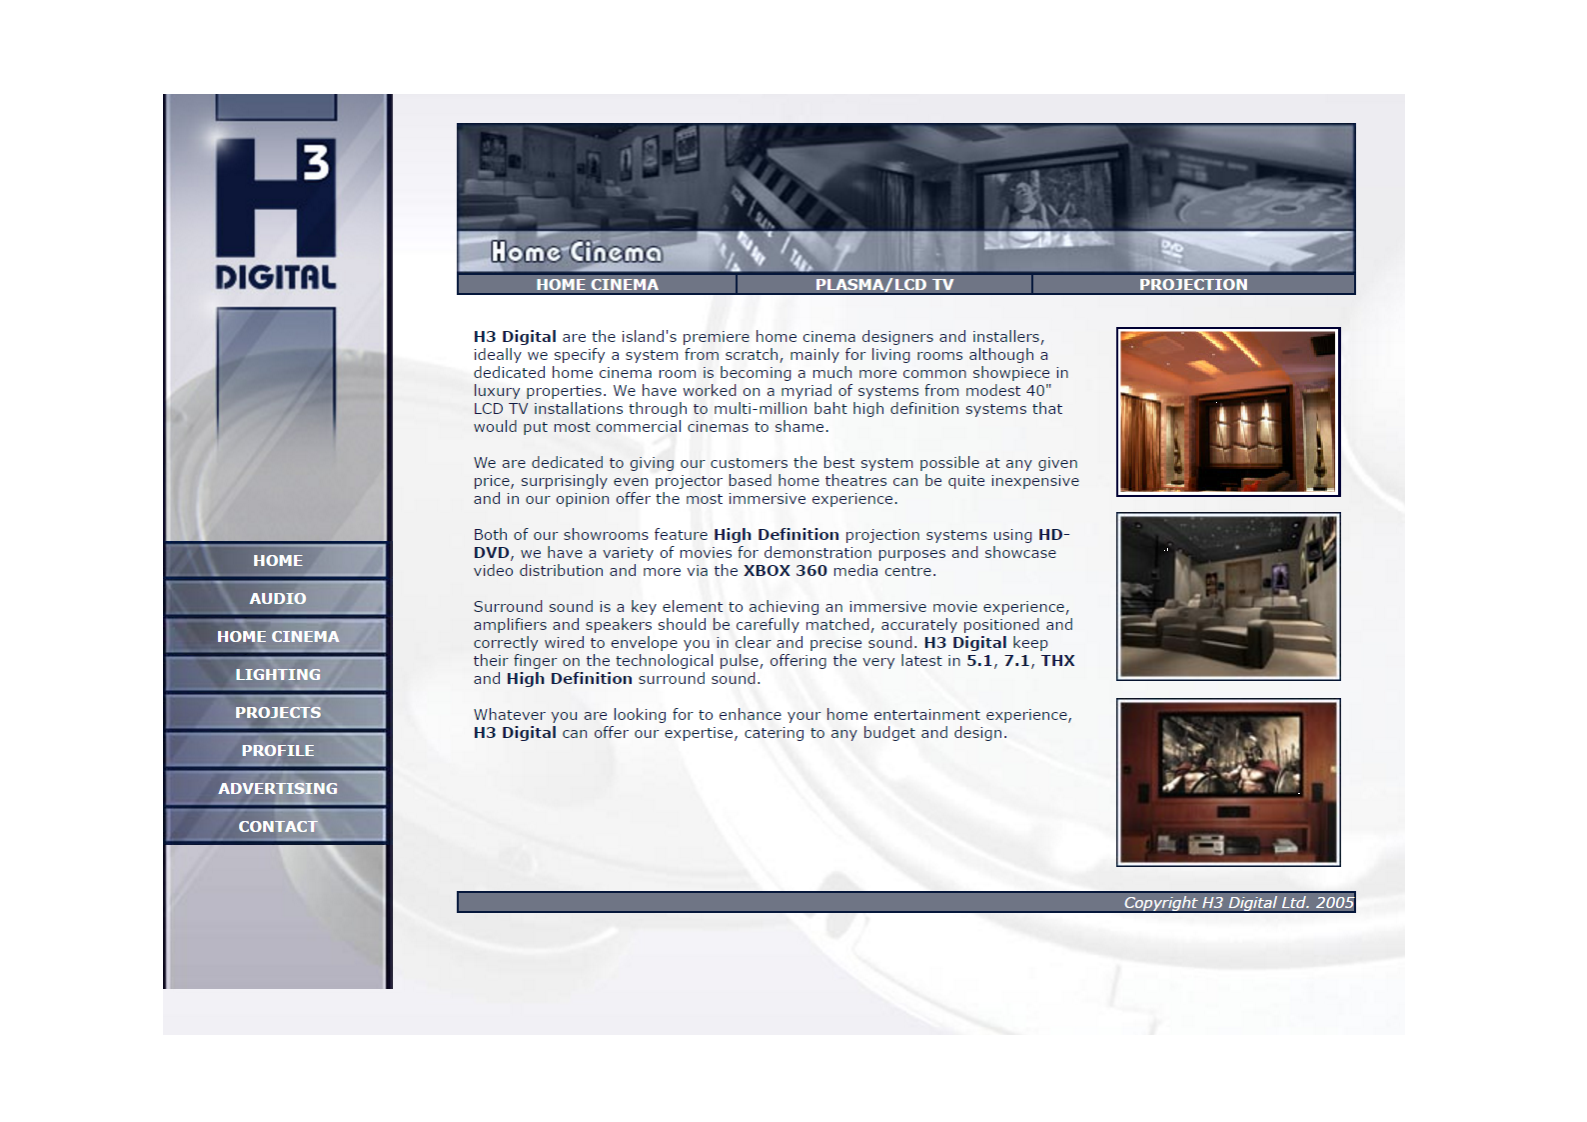 Home Cinema web page from 2007